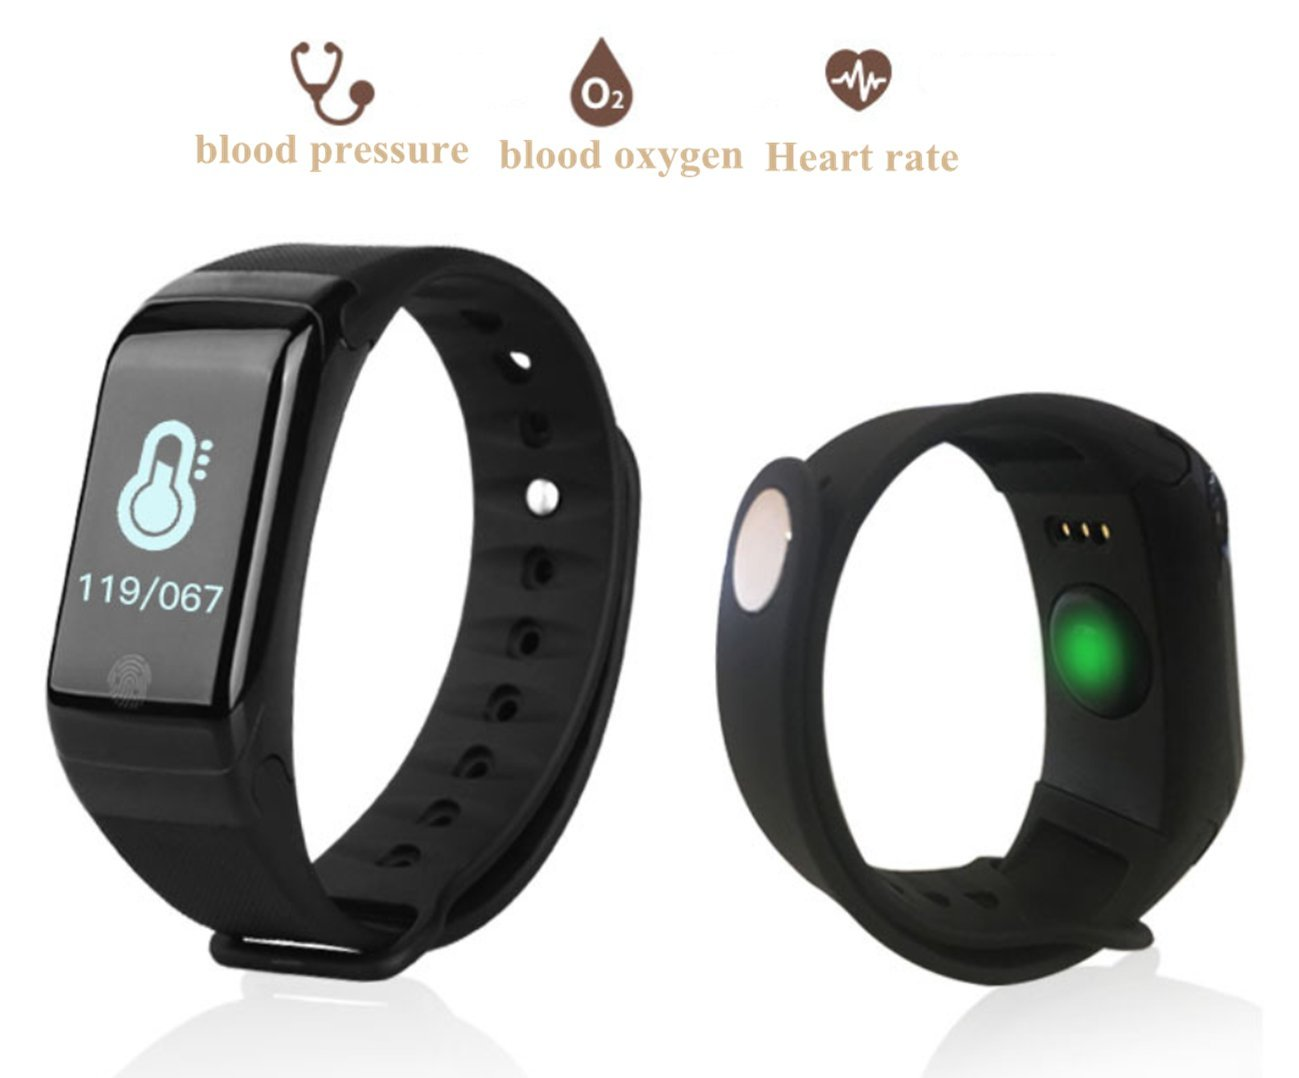 Smart Sport bracelet with Heart Rate Monitor, Sprots Activity Bracelet Smart Watch Pedometer, Smart Bracelet Fitness Tracker Smart Bluetooth Connection Blood pressure Monitor apply for IOS, Android